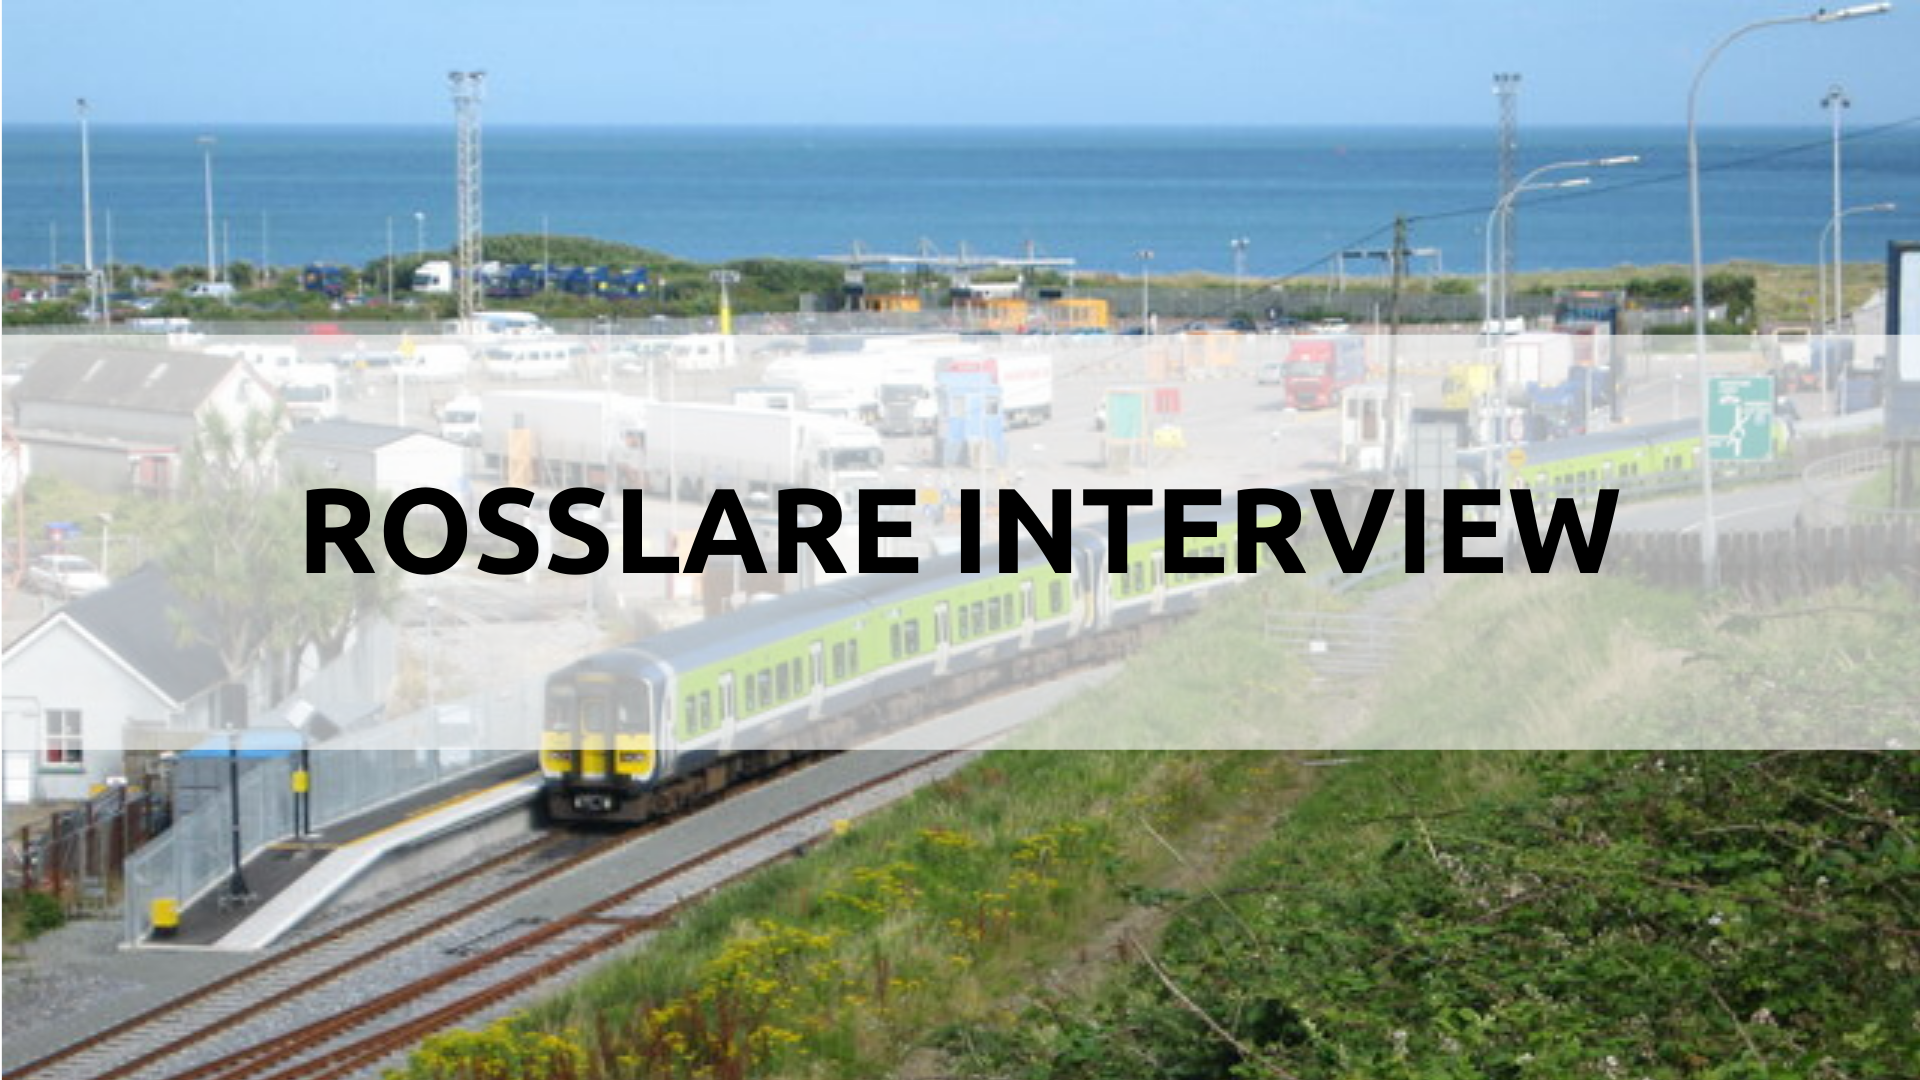 Interview with Rosslare Europort by Ben Radford